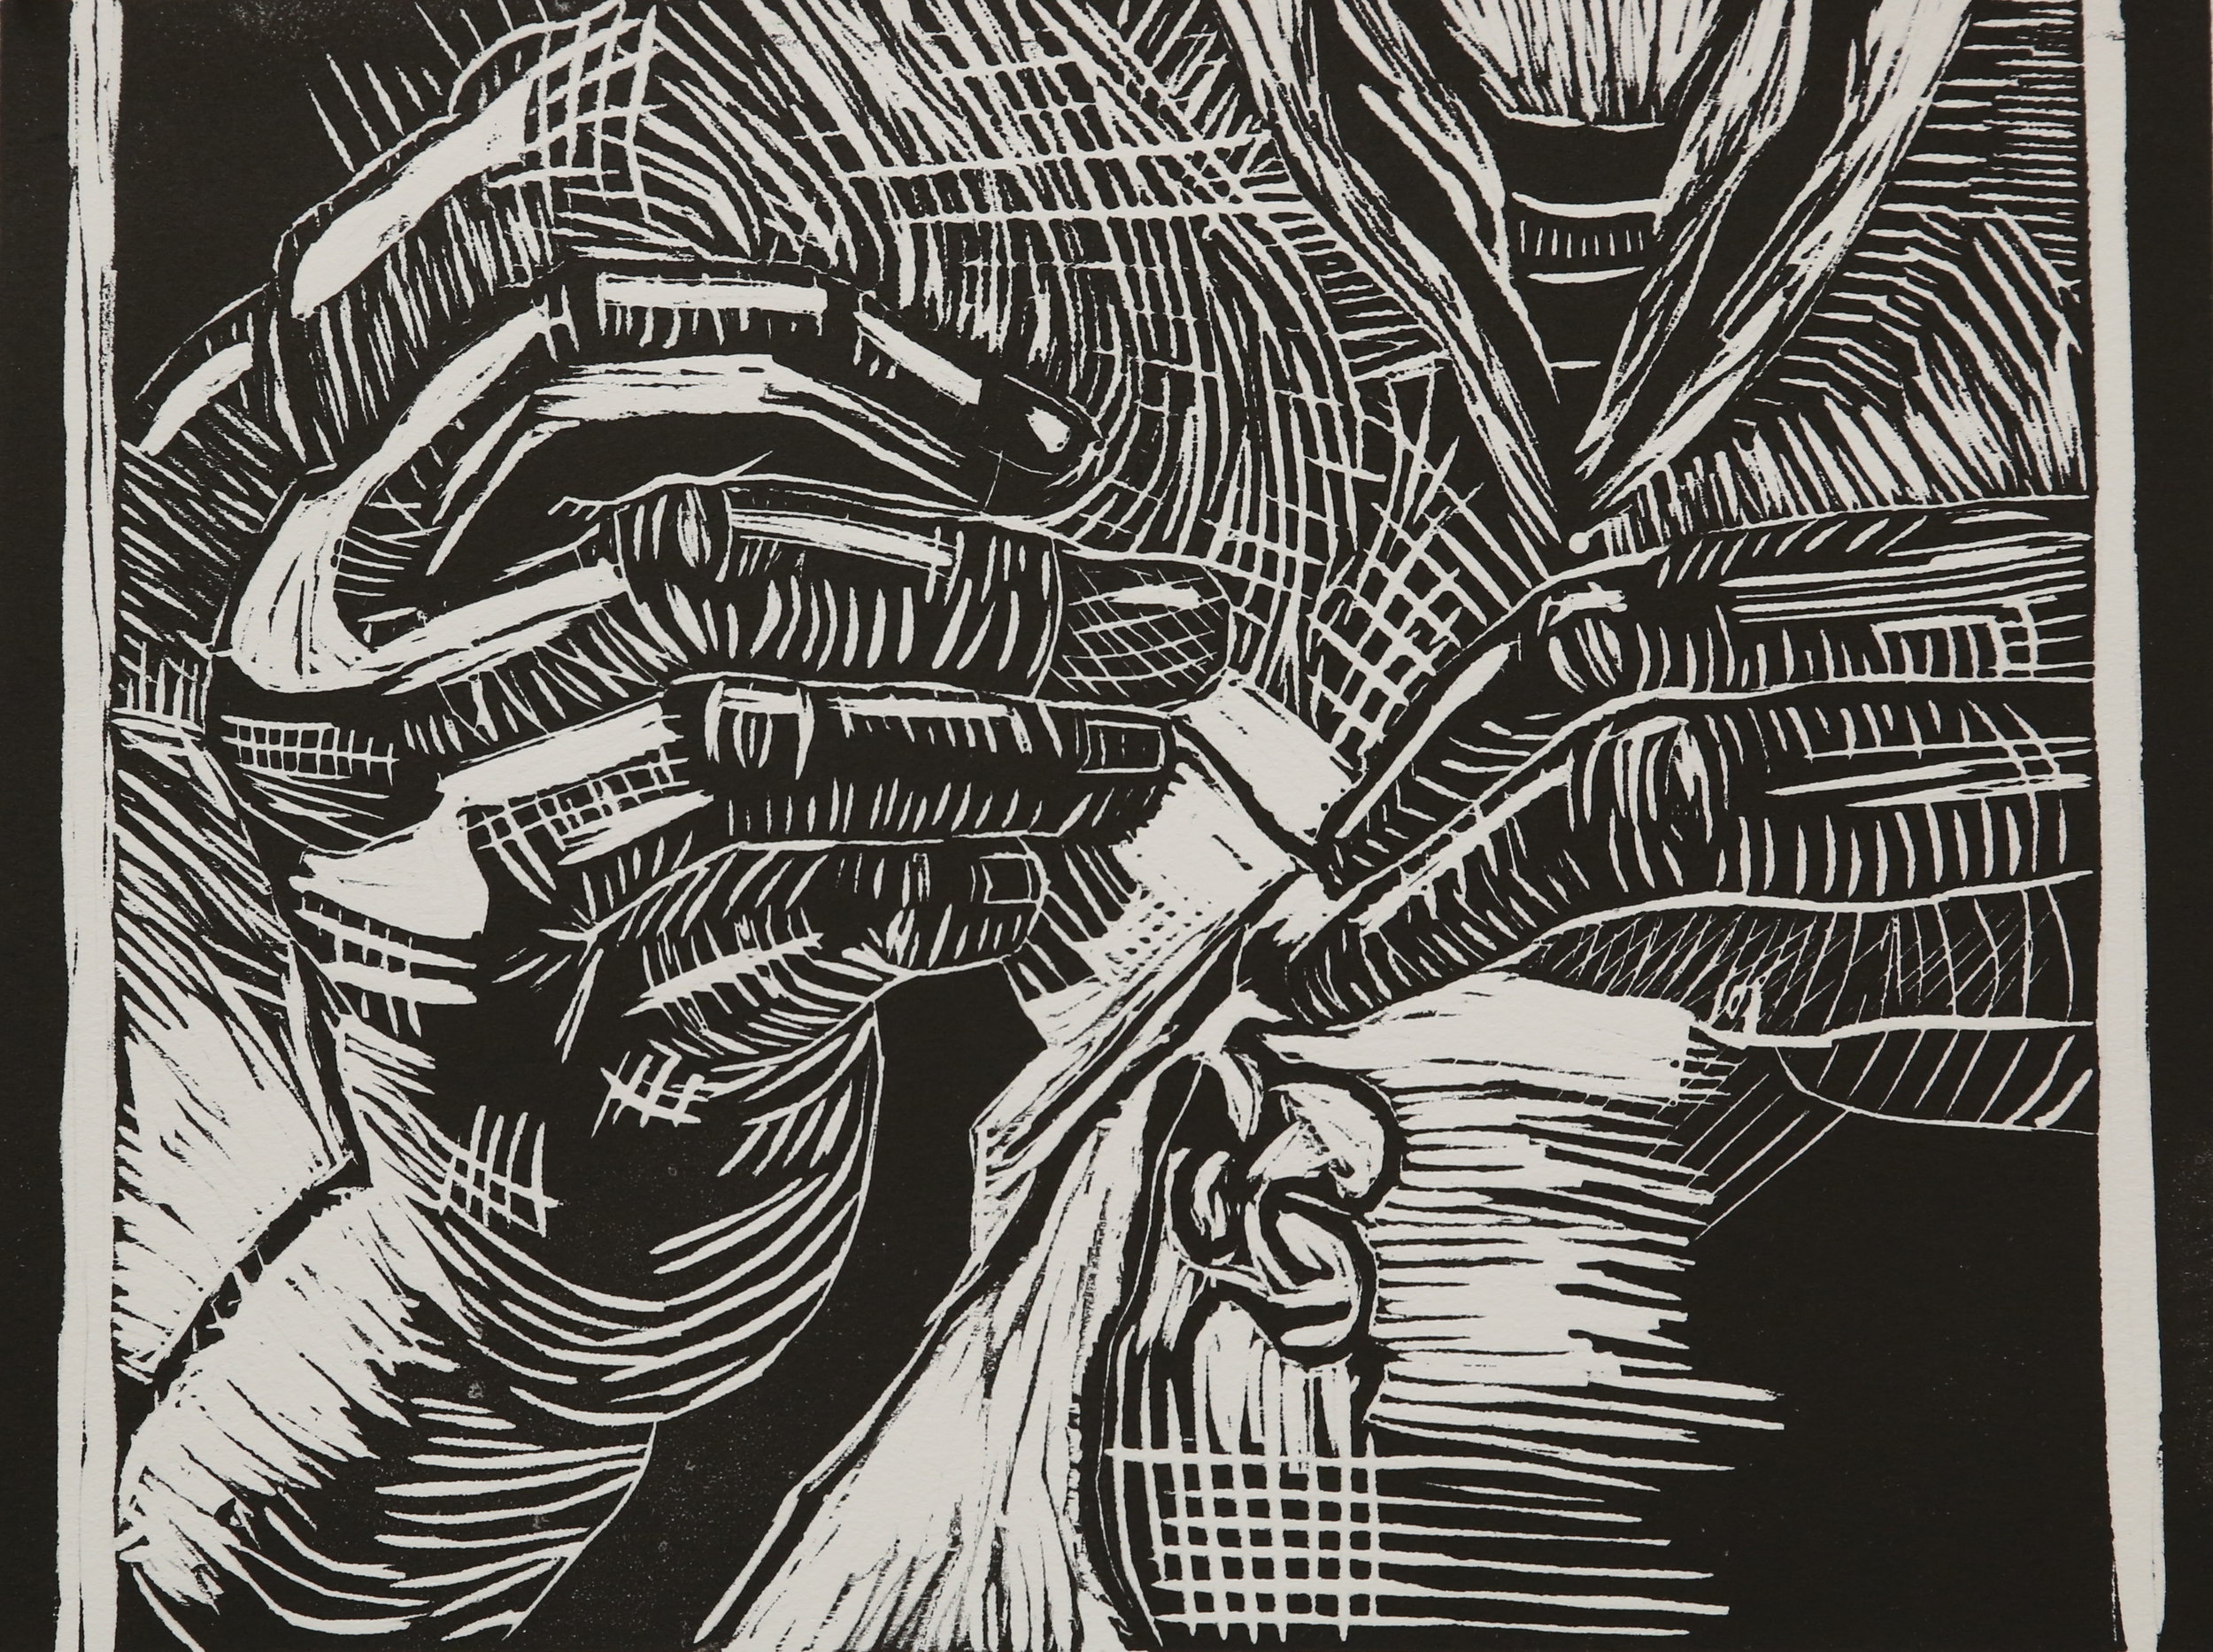 Grandmother   Woodcut Size:15x17 (inches)